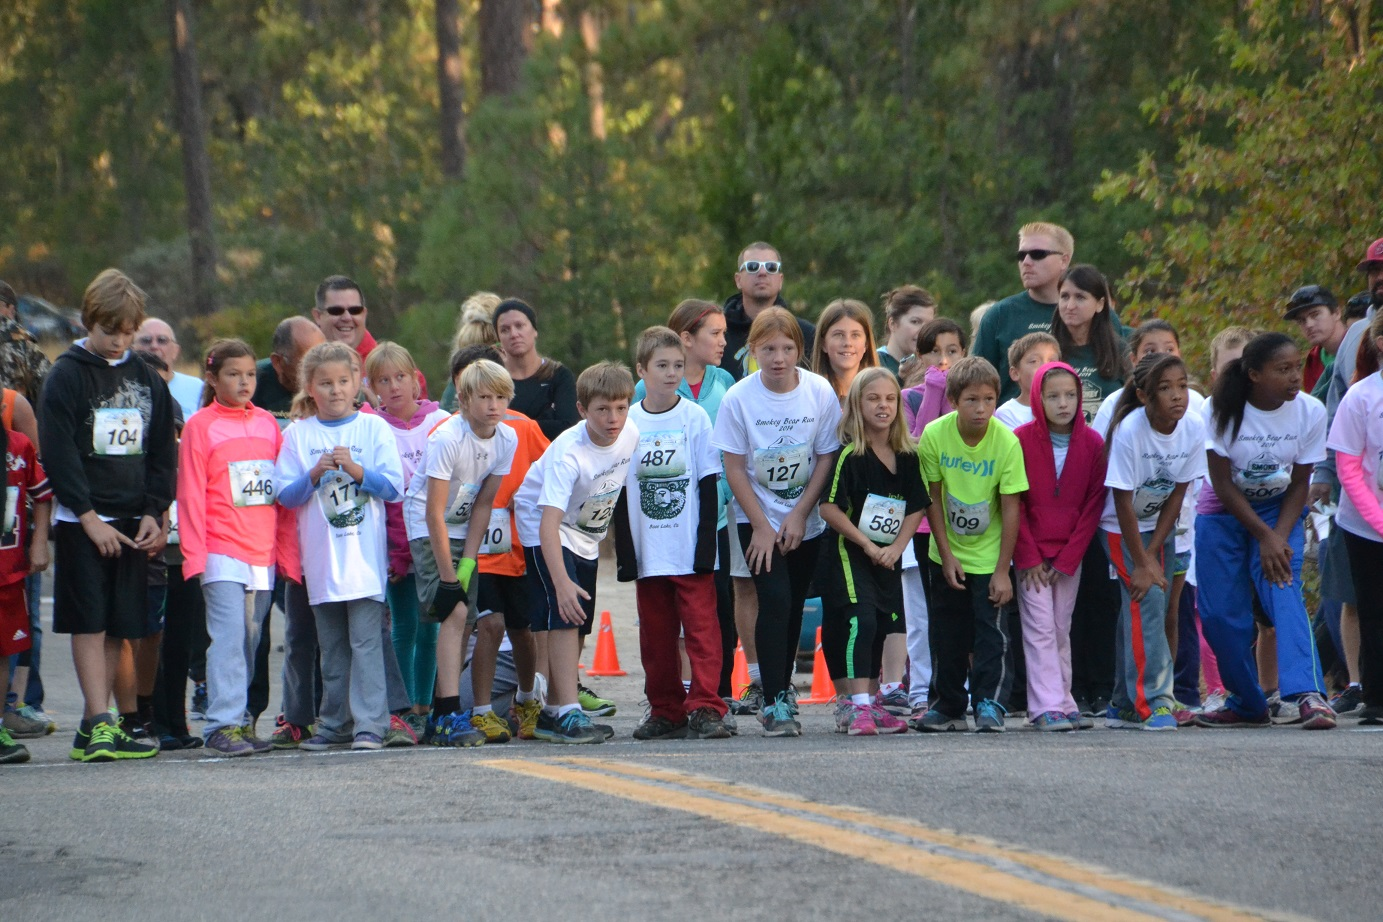 Kids 9-12 years at starting line photo by Gina Clugston